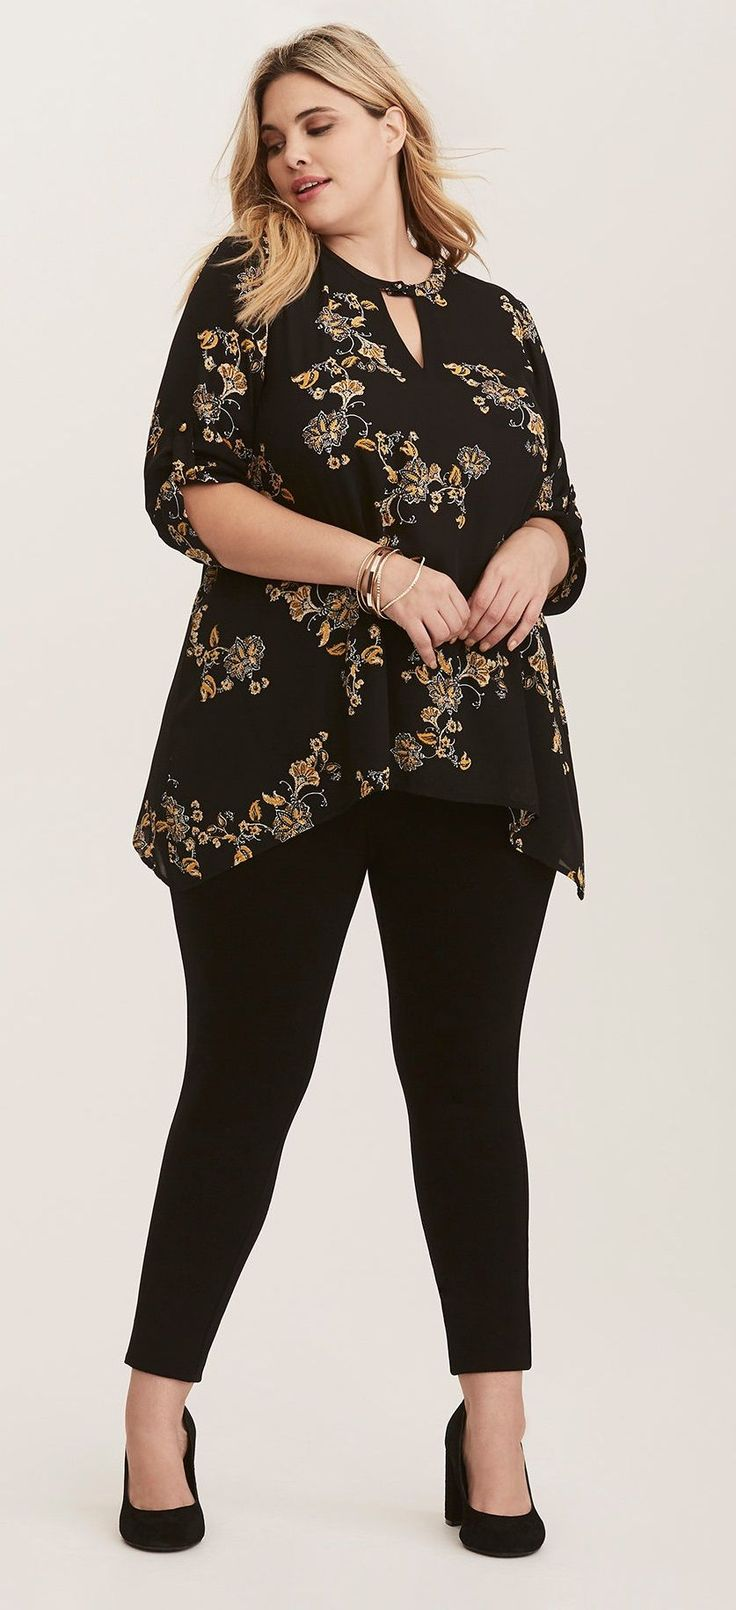 Best 25+ Plus size tops ideas on Pinterest